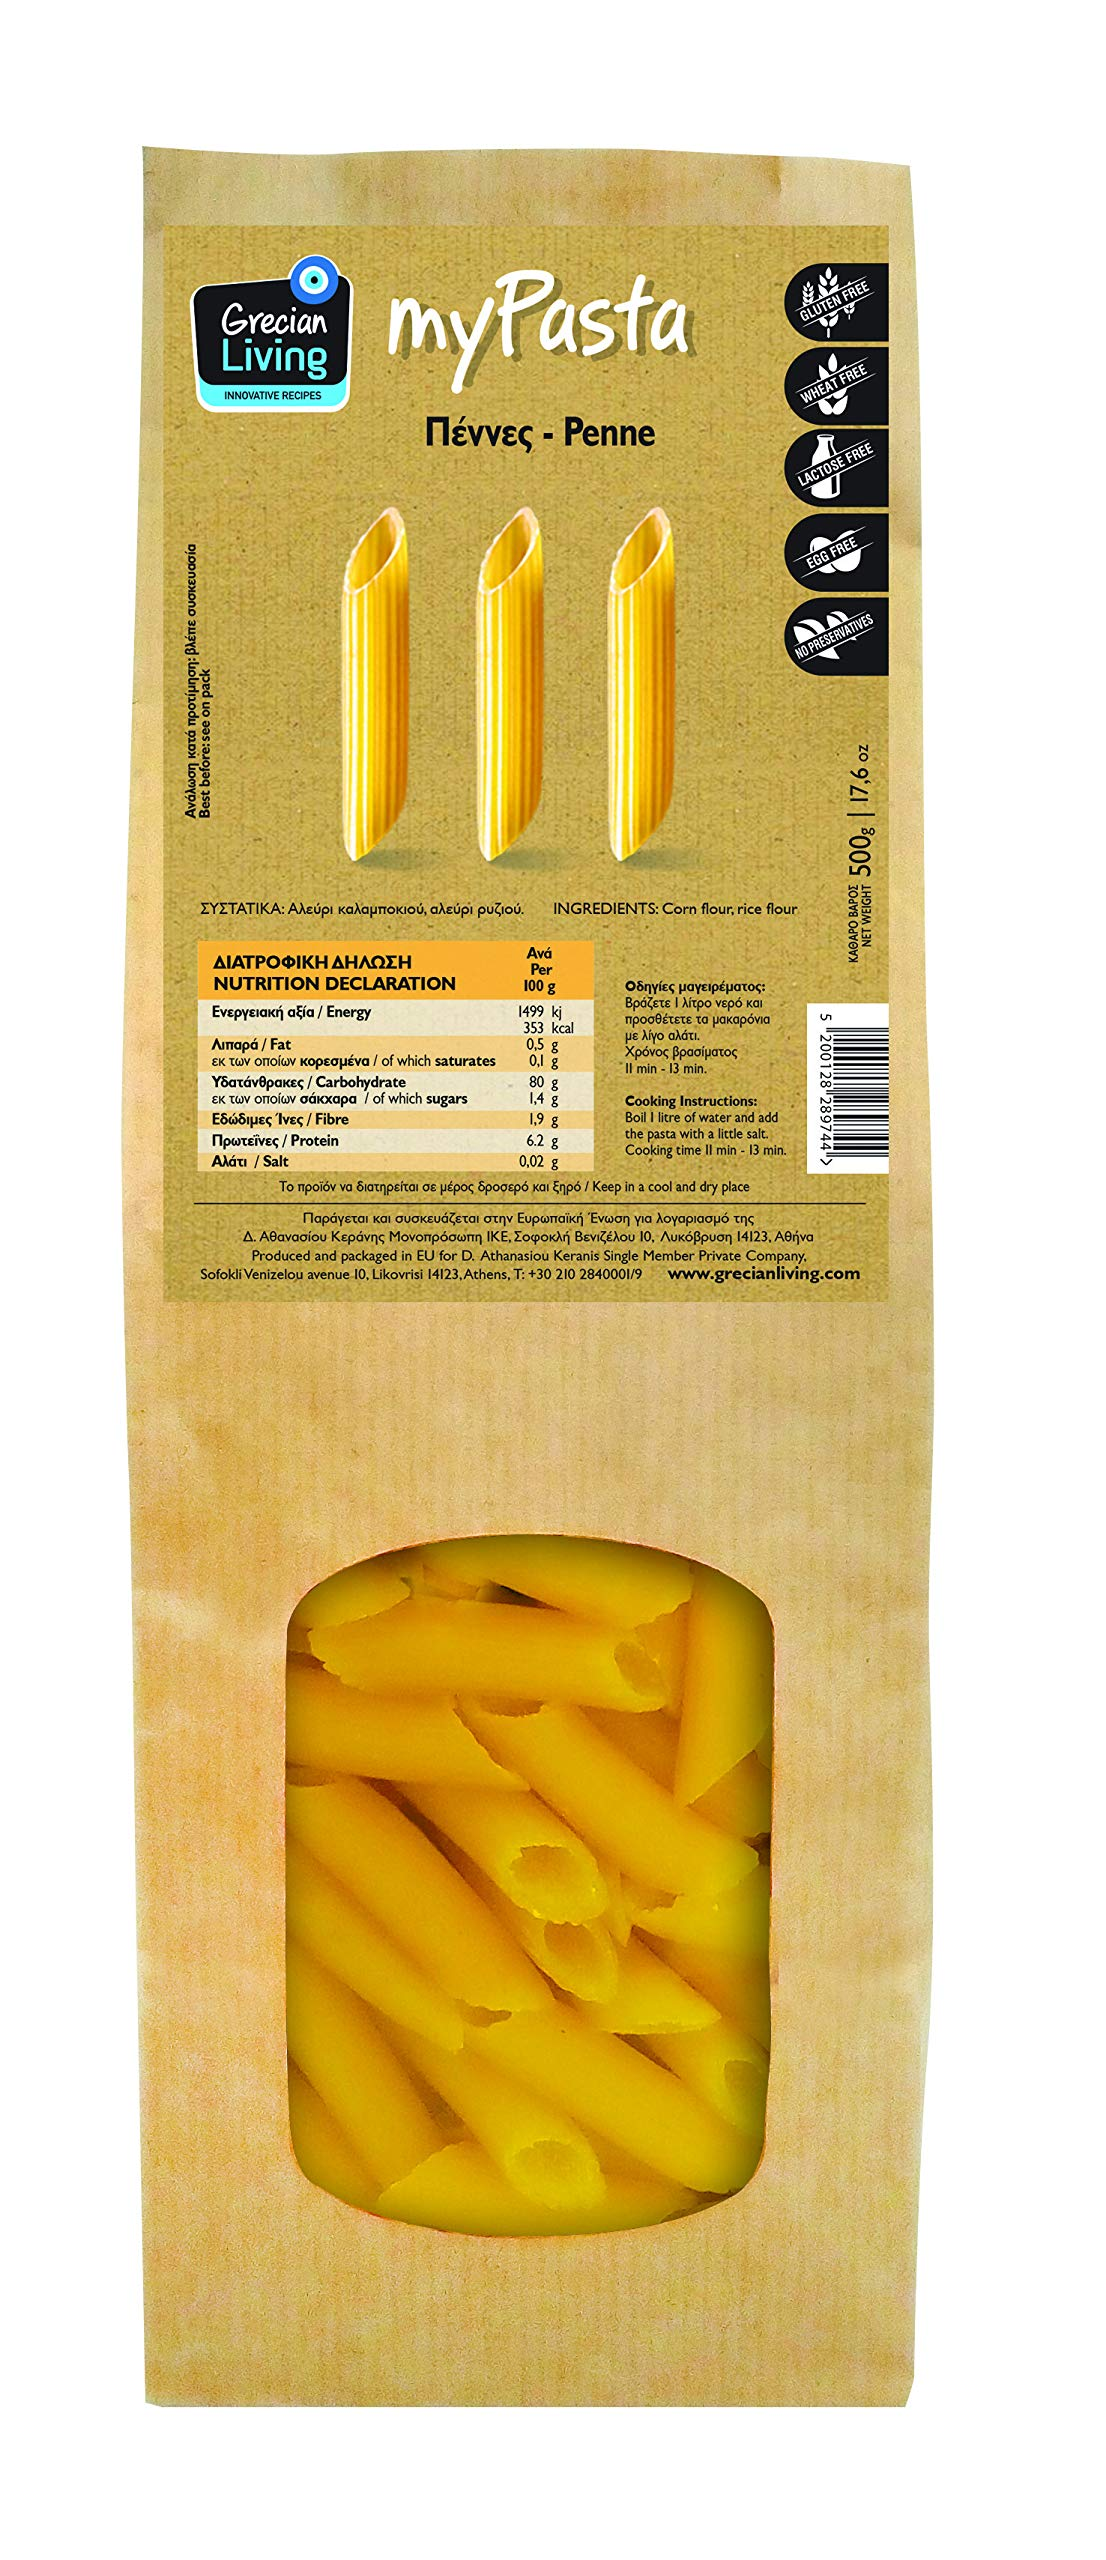 MyPasta: Gluten Free Penne, 10 count, 500 grams (17.6 oz) by Grecian Living